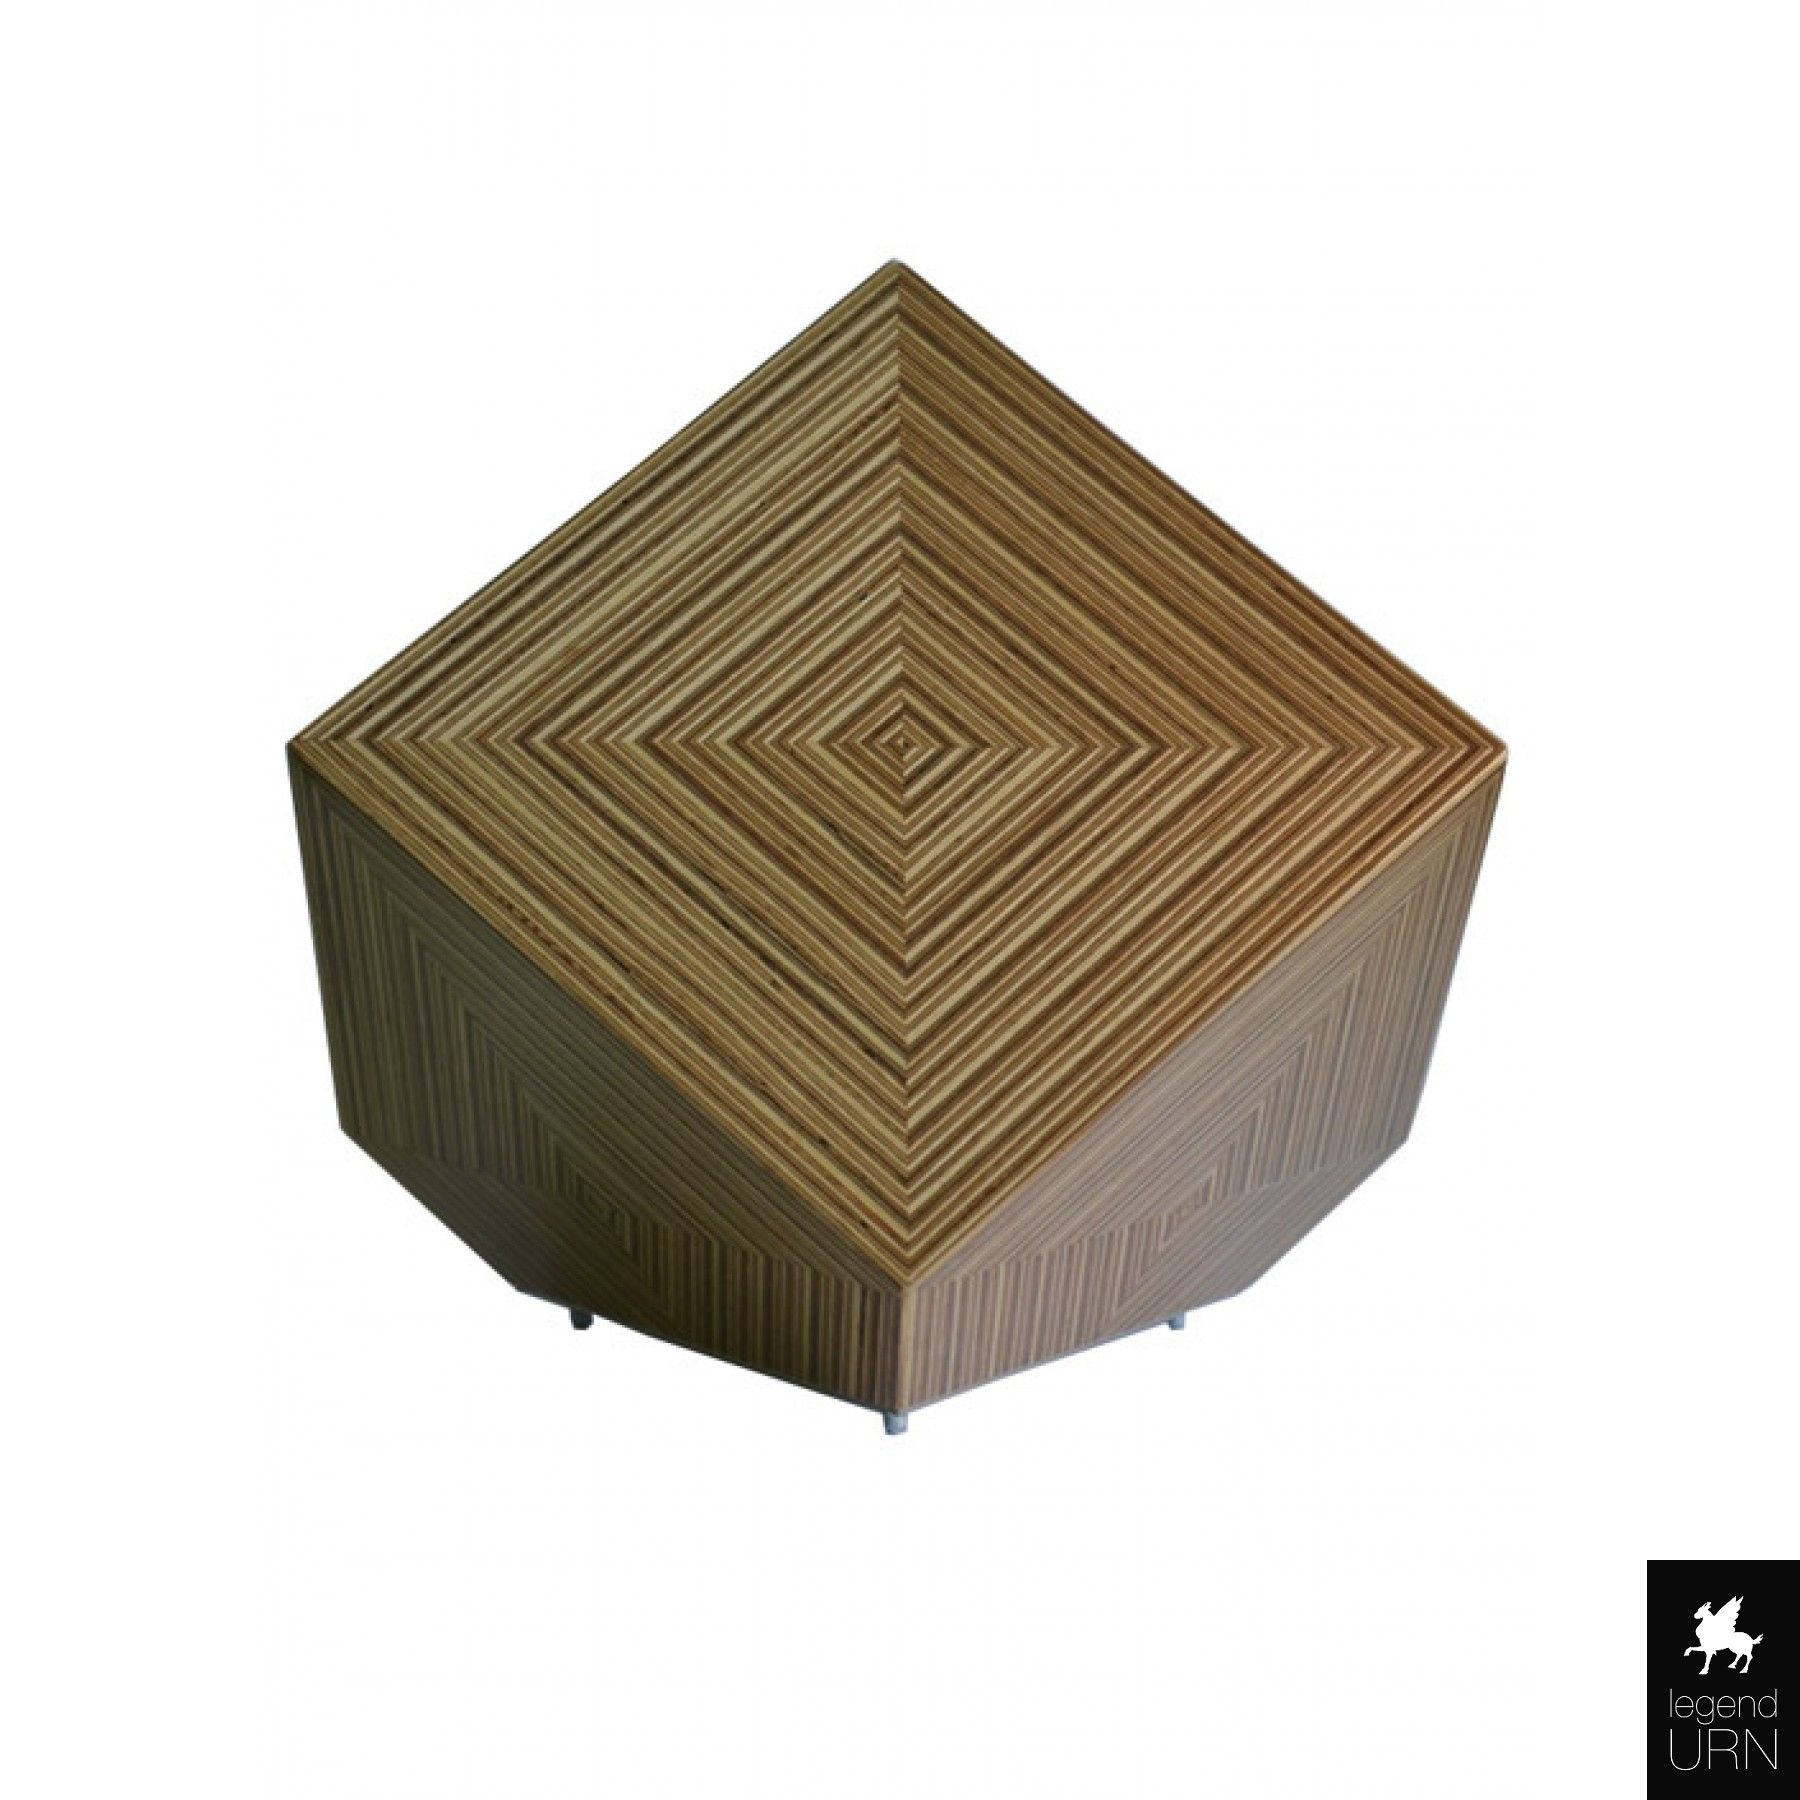 Veneer wood funeral urn legendURN UK funeral urns